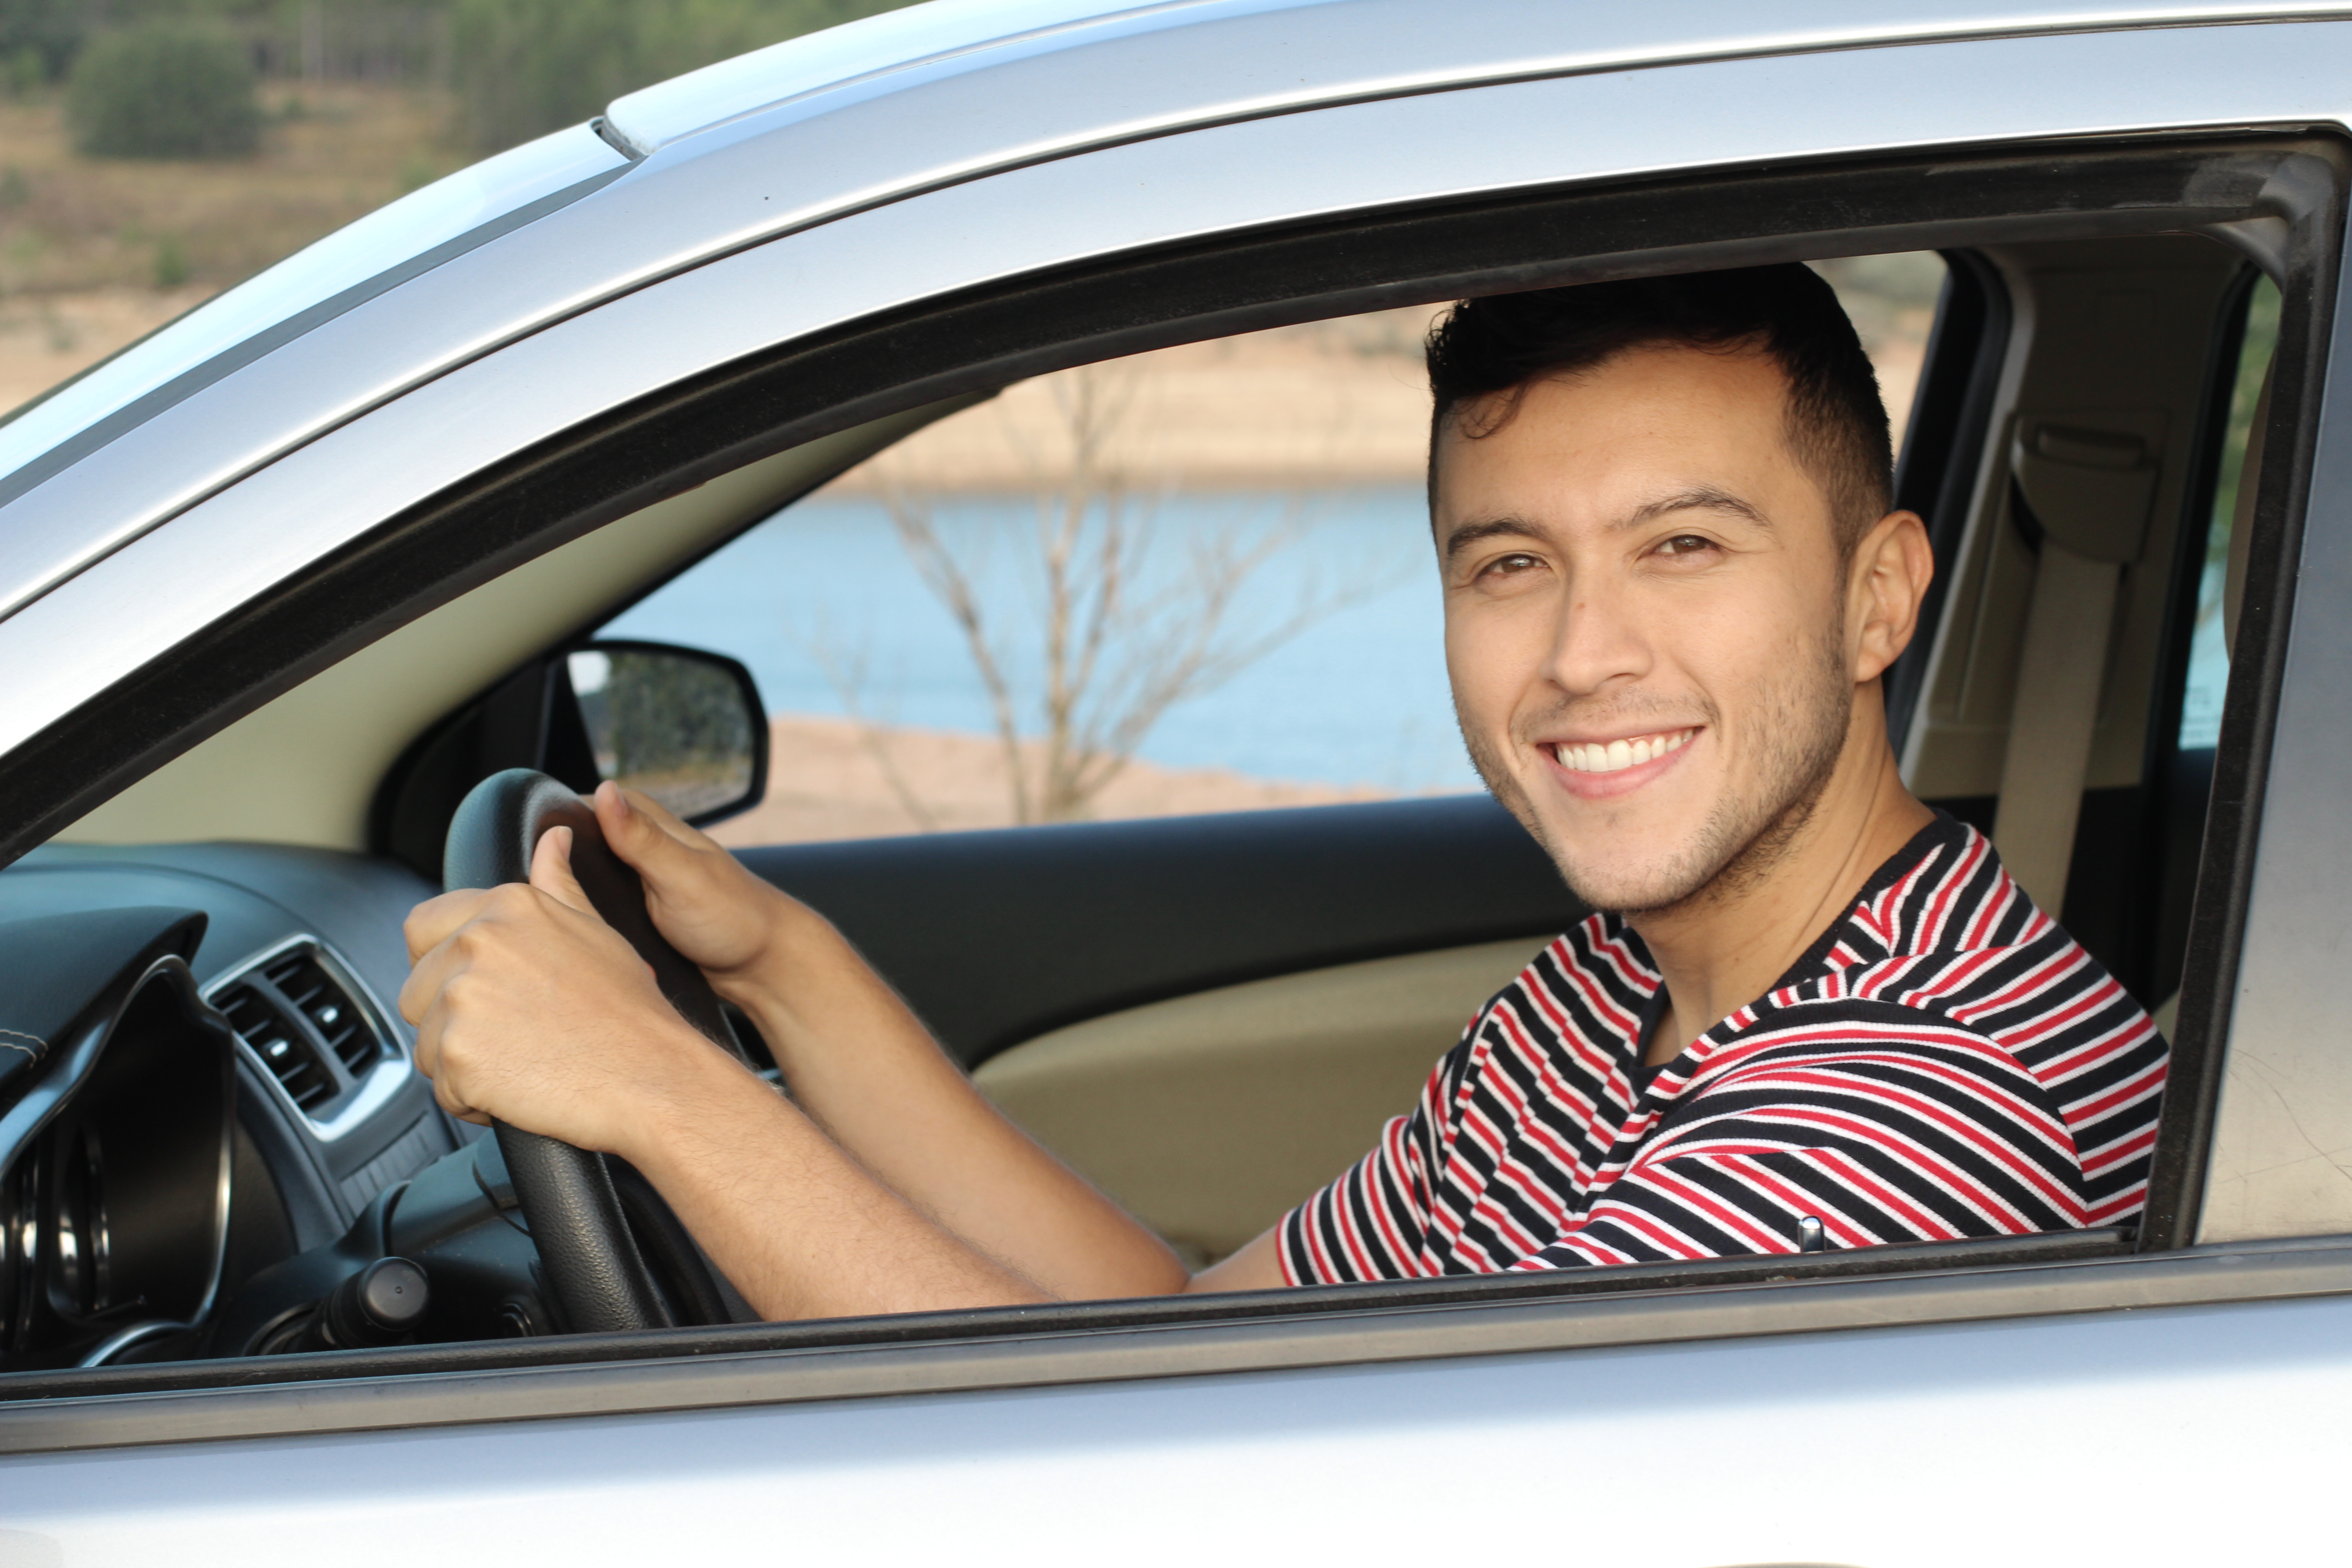 hispanic_man_driving_car_drivers_seat